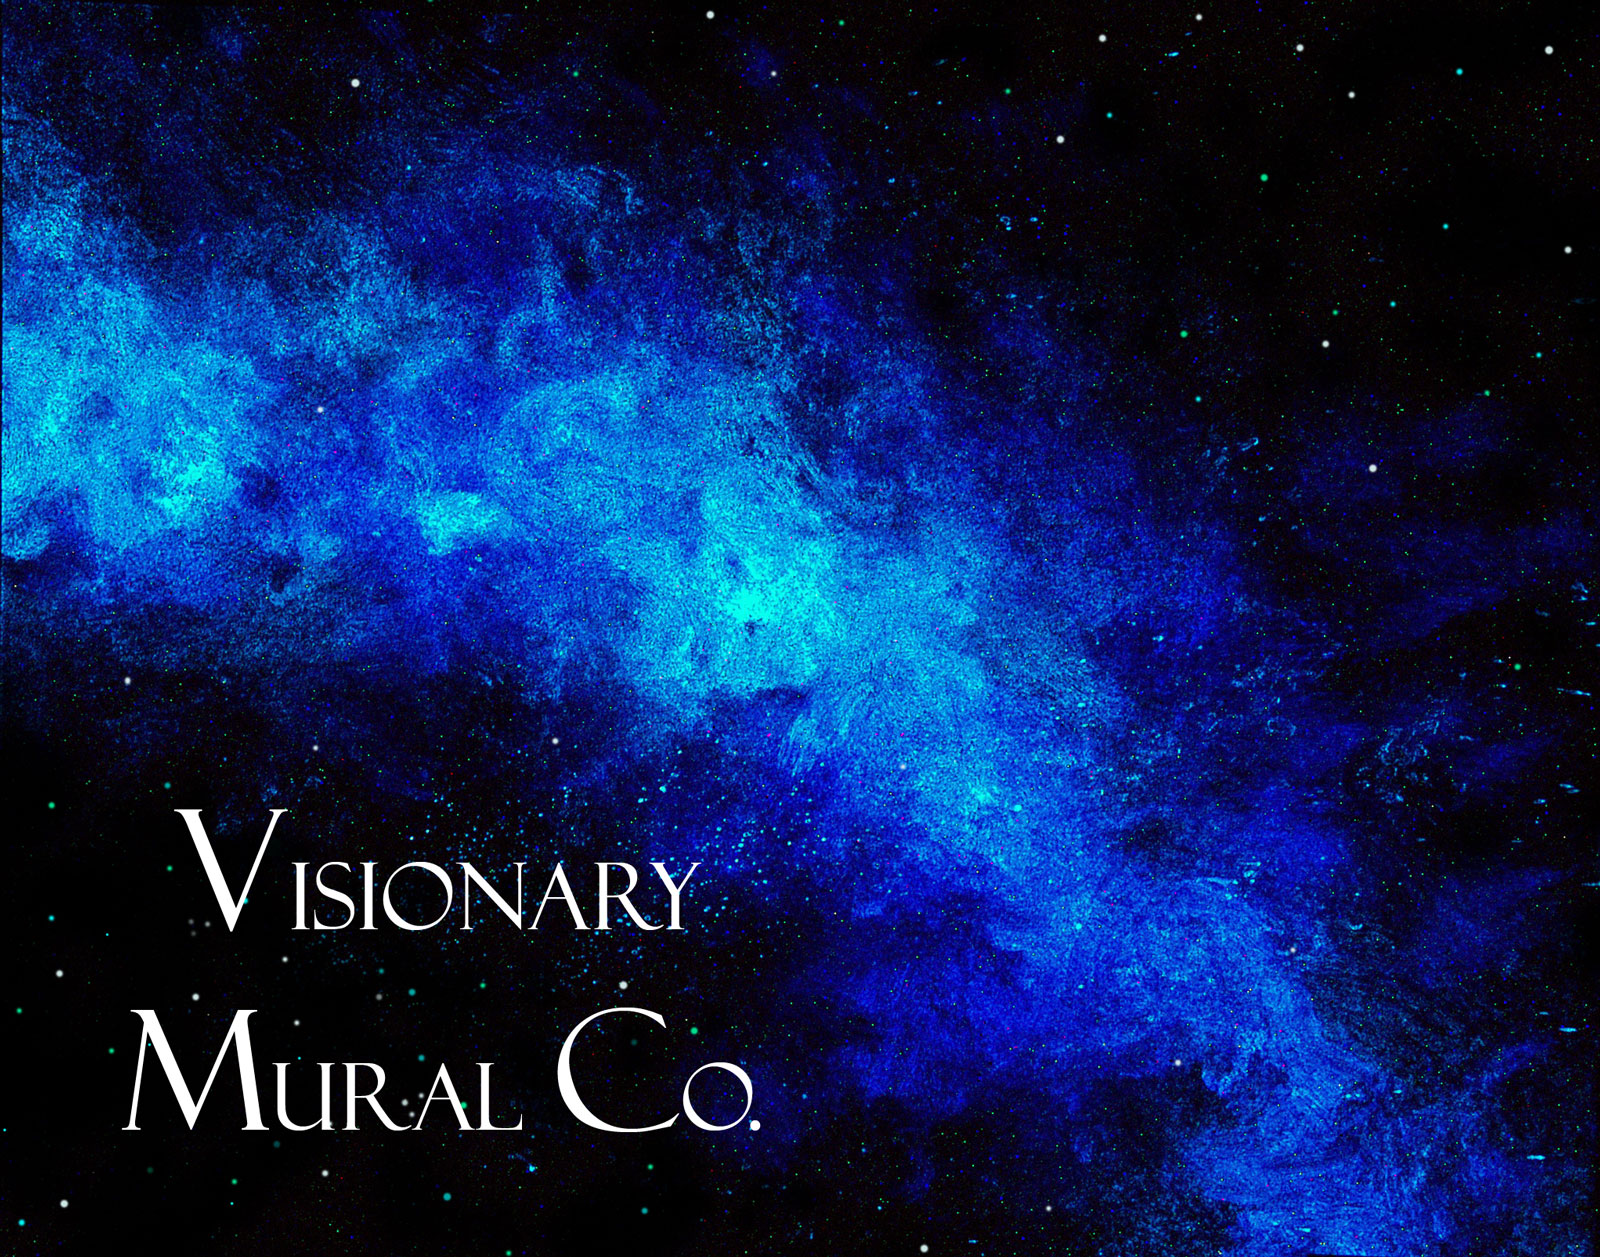 Glow In The Dark Wall Murals outer space muralsvisionary mural co. glow in the dark